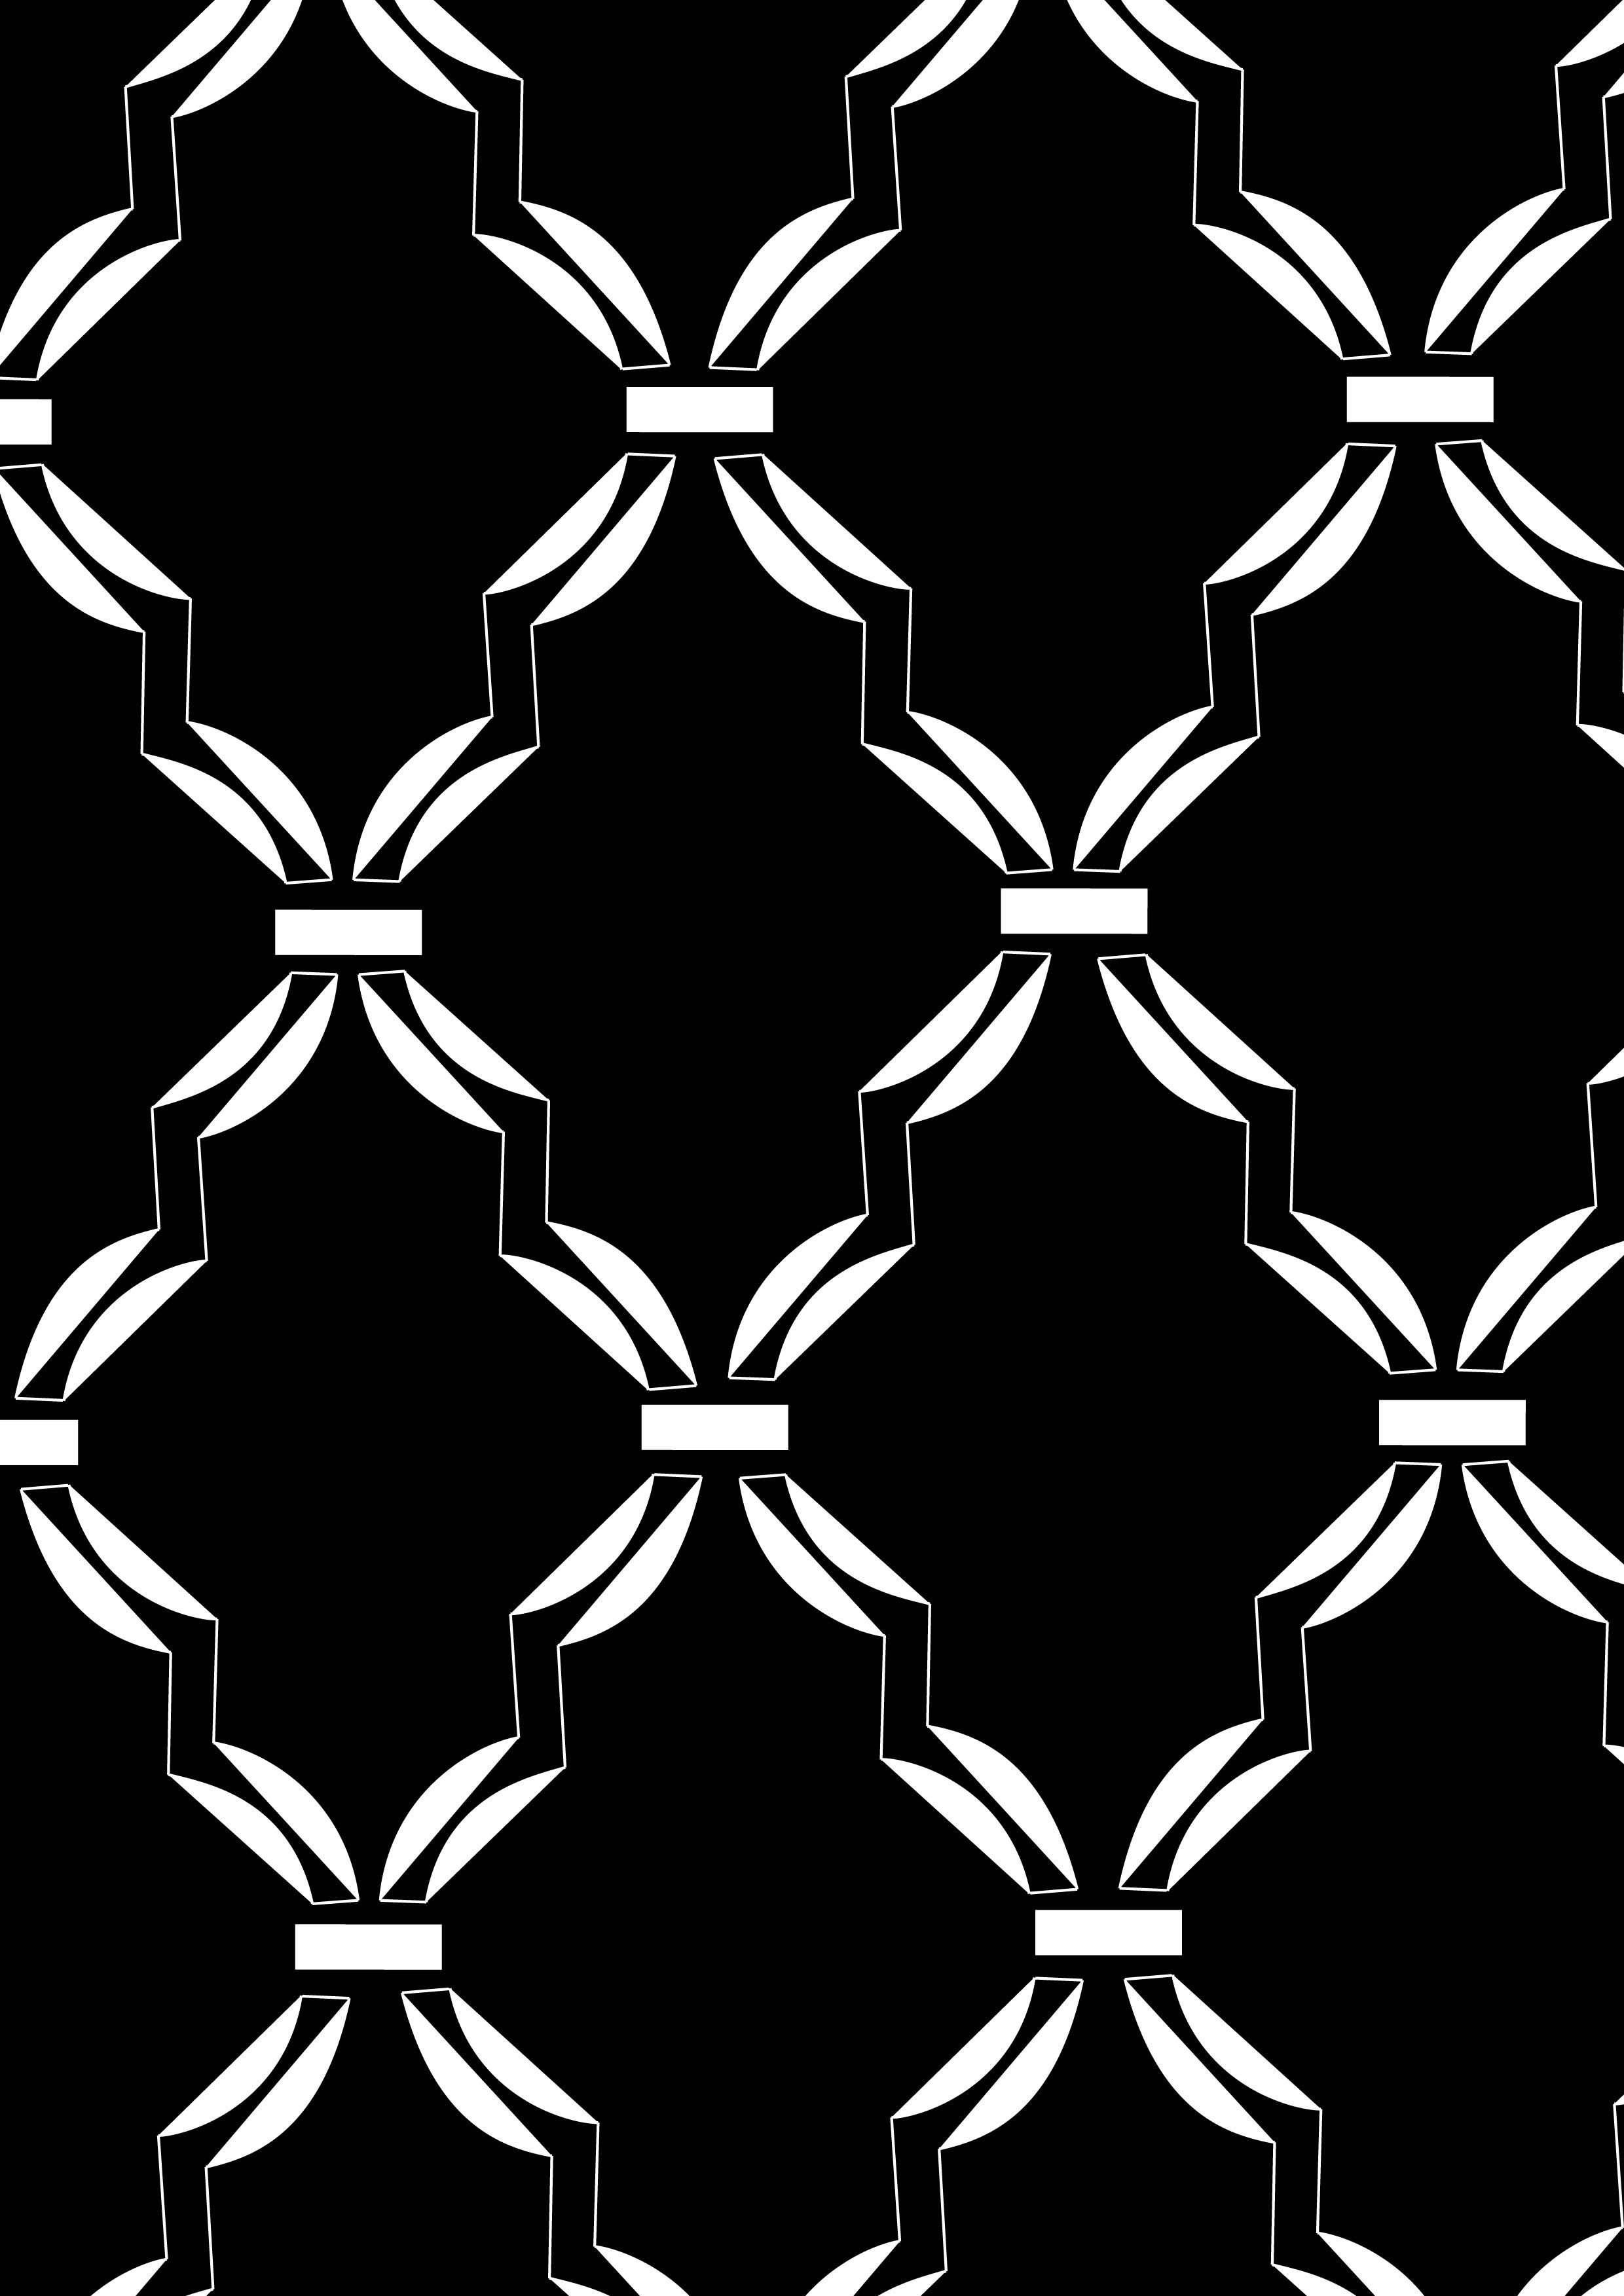 Pin by Taghred M on Islamic art & patterns in 2018